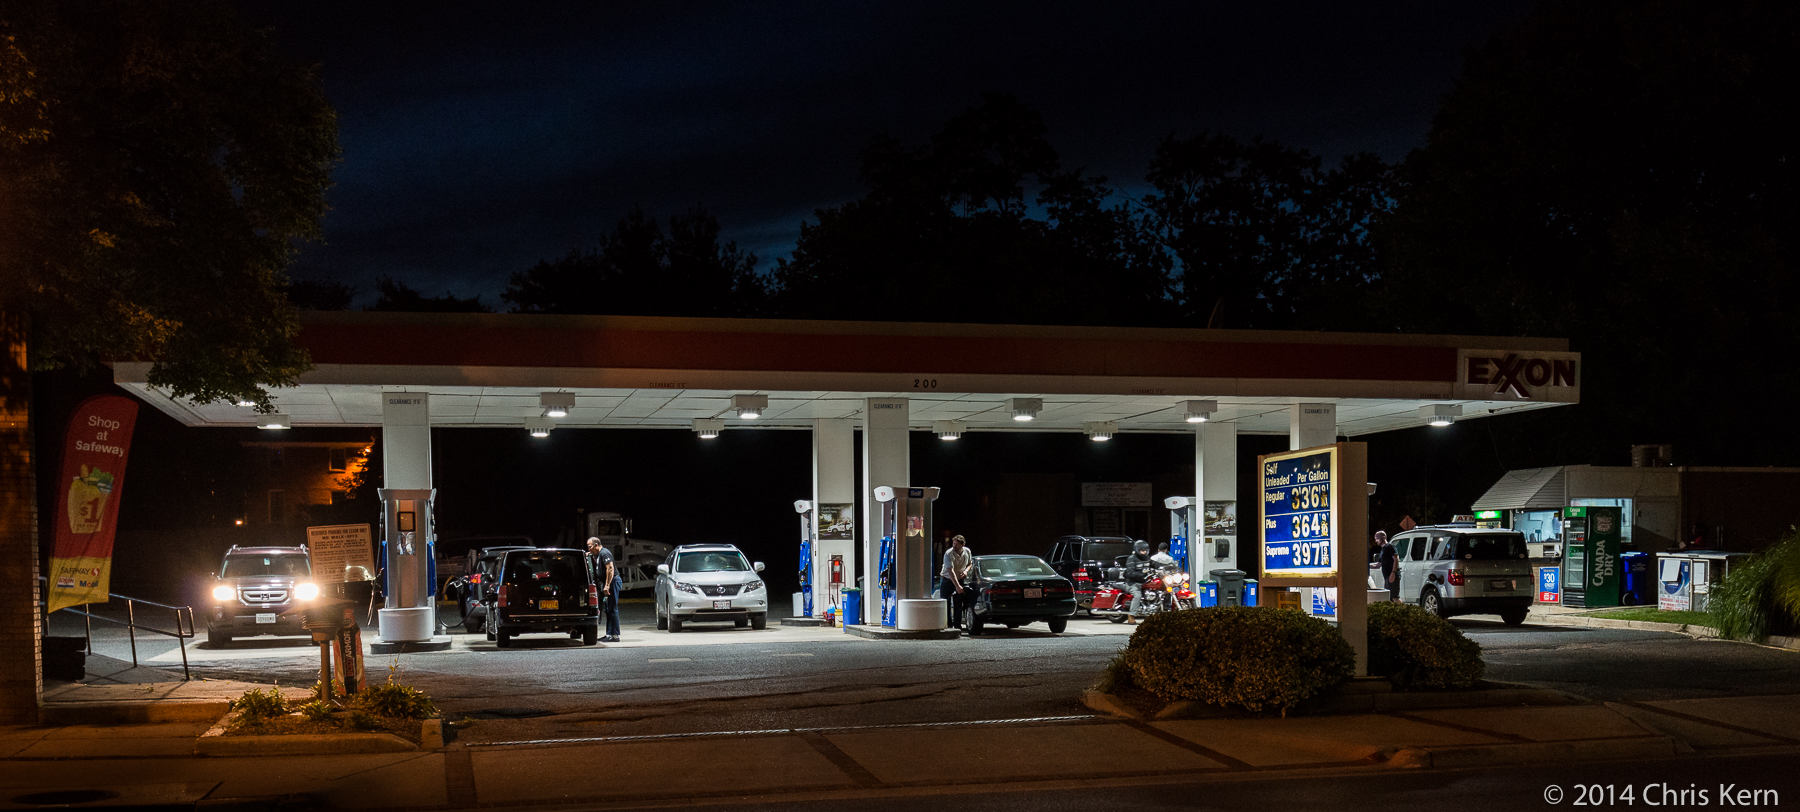 Exxon Station at Night, Rockville, Maryland, USA (2014)